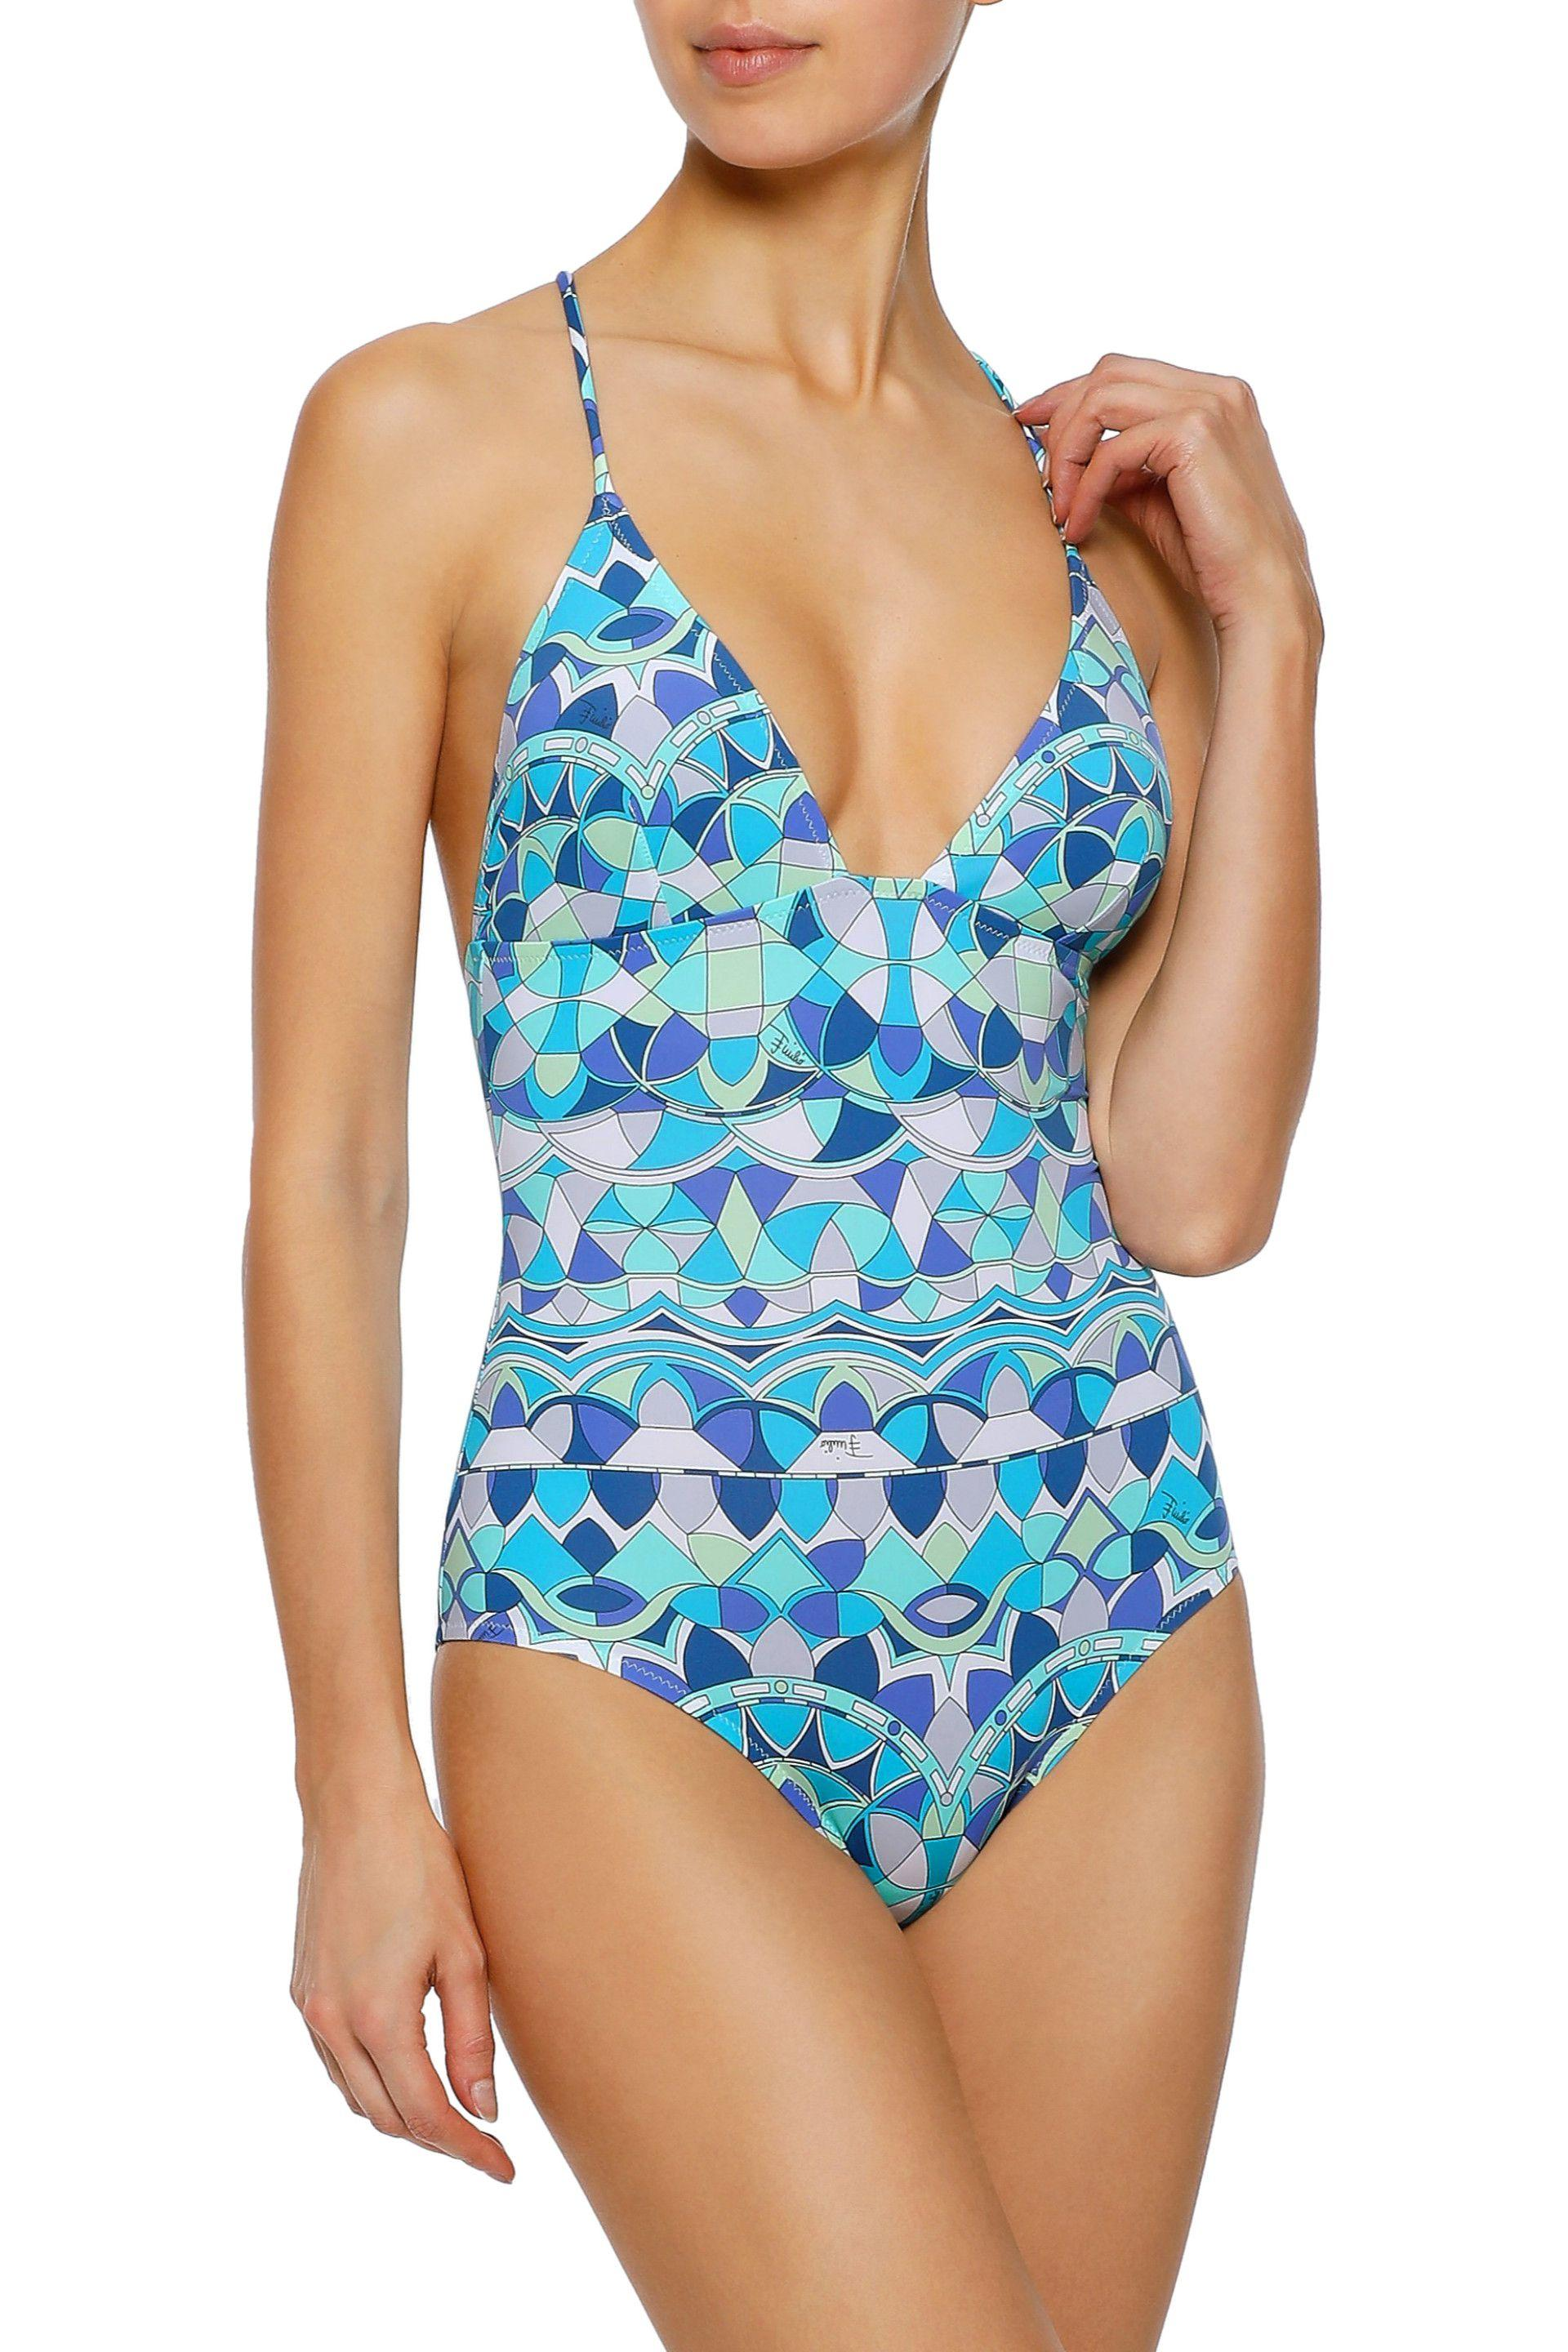 71d5d3bcf2a ... Blue Woman Ring-embellished Printed Swimsuit Turquoise - Lyst. View  fullscreen